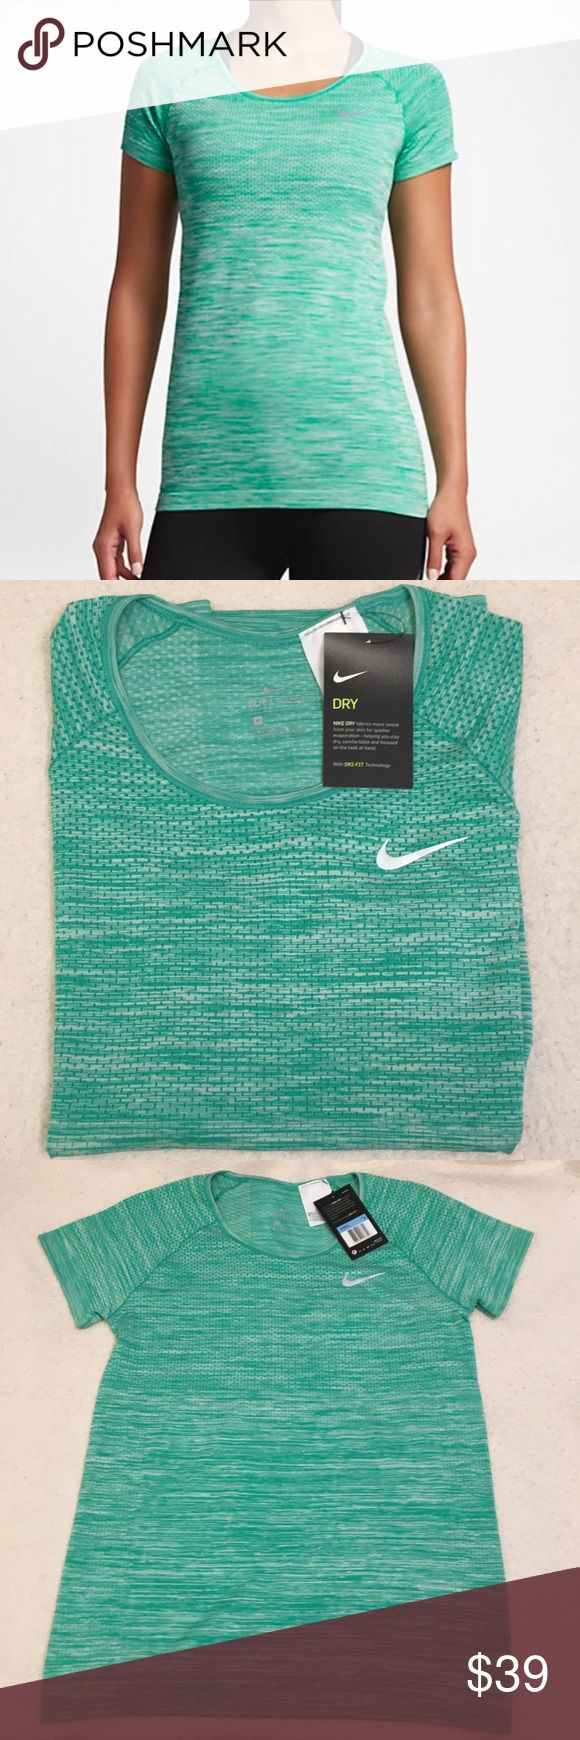 Nike Dri-Fit Green Short Sleeve Running Top Soft and stretchy green/teal short sleeve running tee with Dri-Fit technology. NWT!   Bust: about 17.25 inches across front Length: about 25.5 inches Nike Tops Tees - Short Sleeve